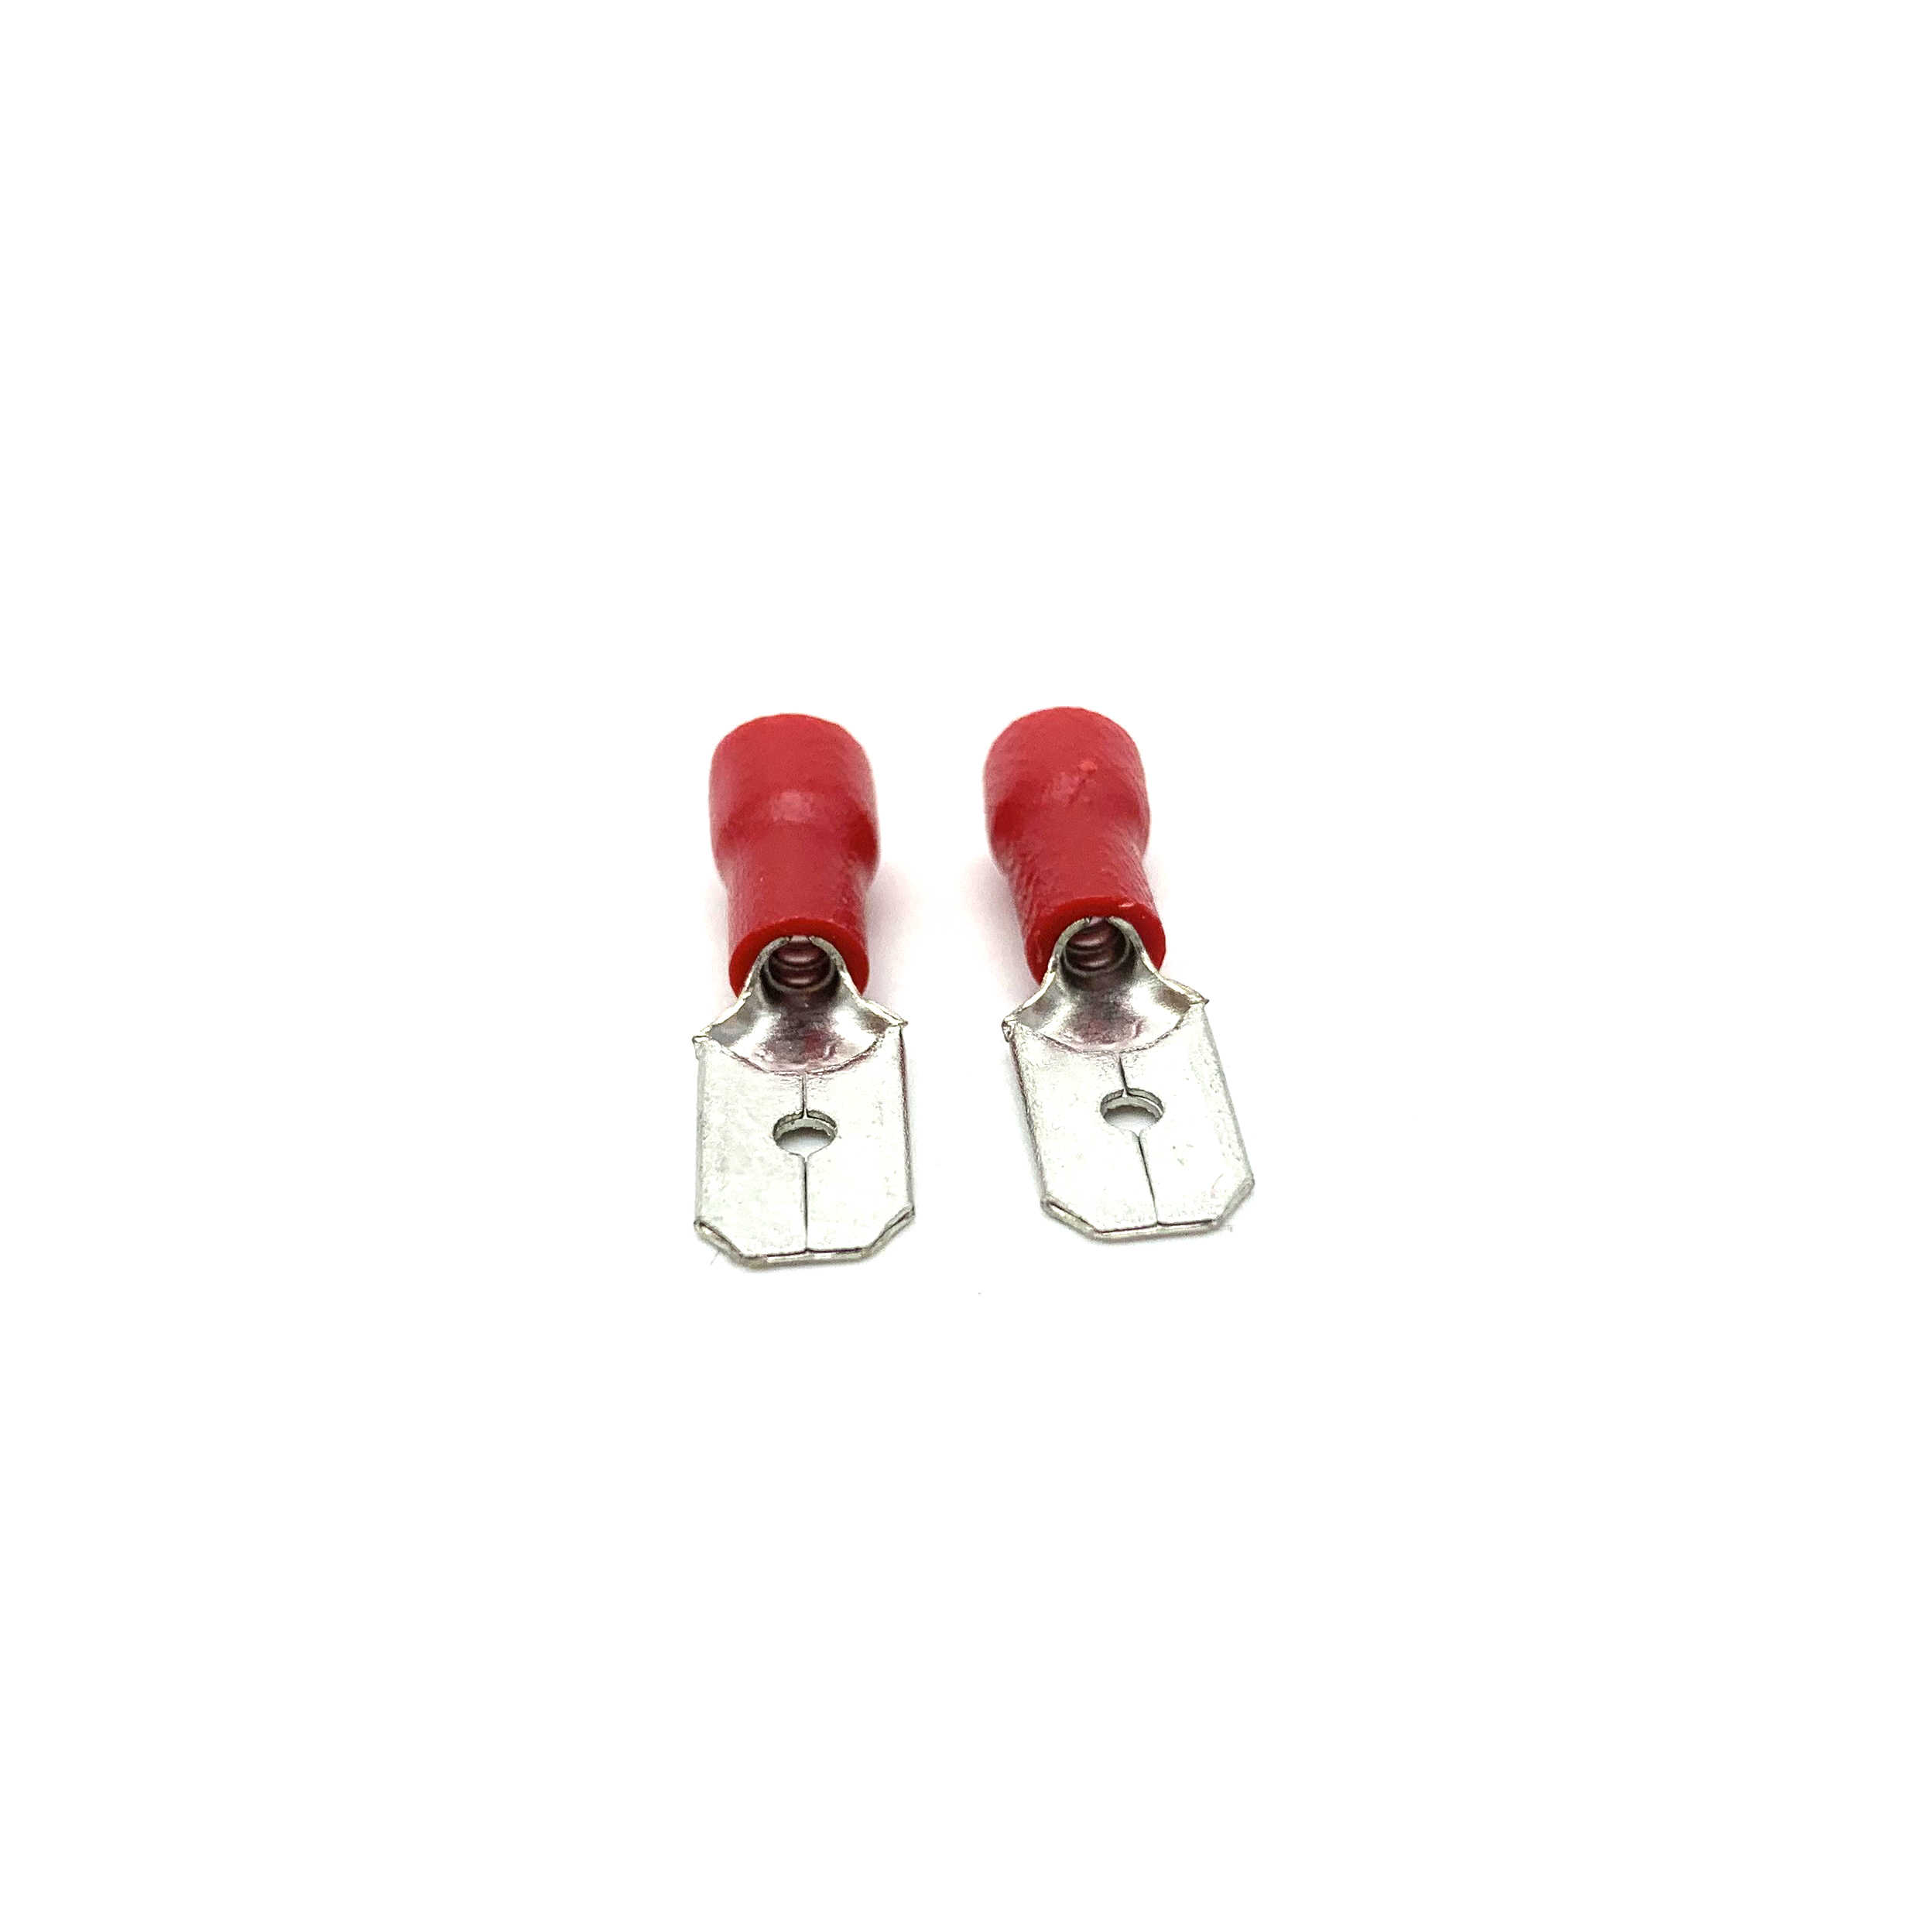 1/2 Set FDD 1.25-250 MDD1.25-250 6.3 Mm Merah Wanita + Male Spade Insulated Listrik Crimp Terminal konektor Kabel Plug